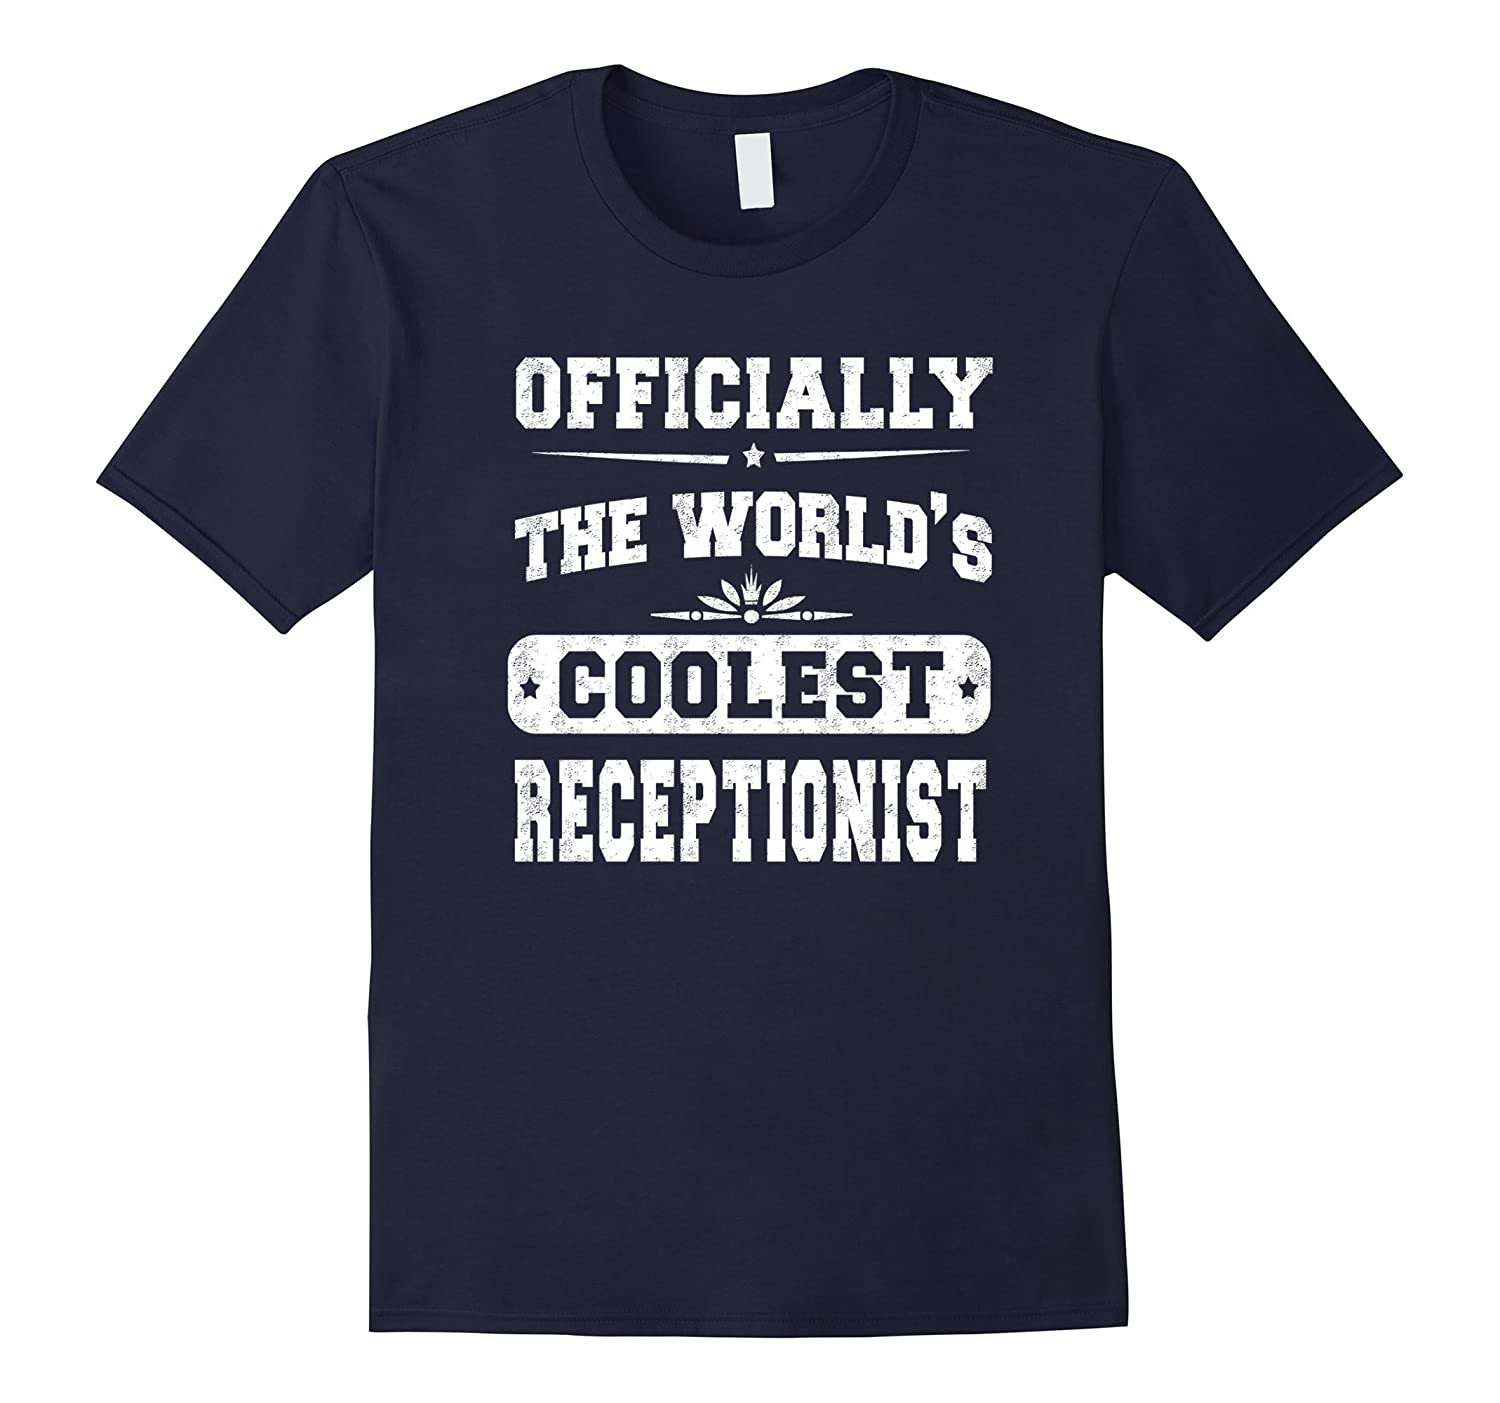 The Worlds Coolest Receptionist - Unisex T-shirt Gift-TD